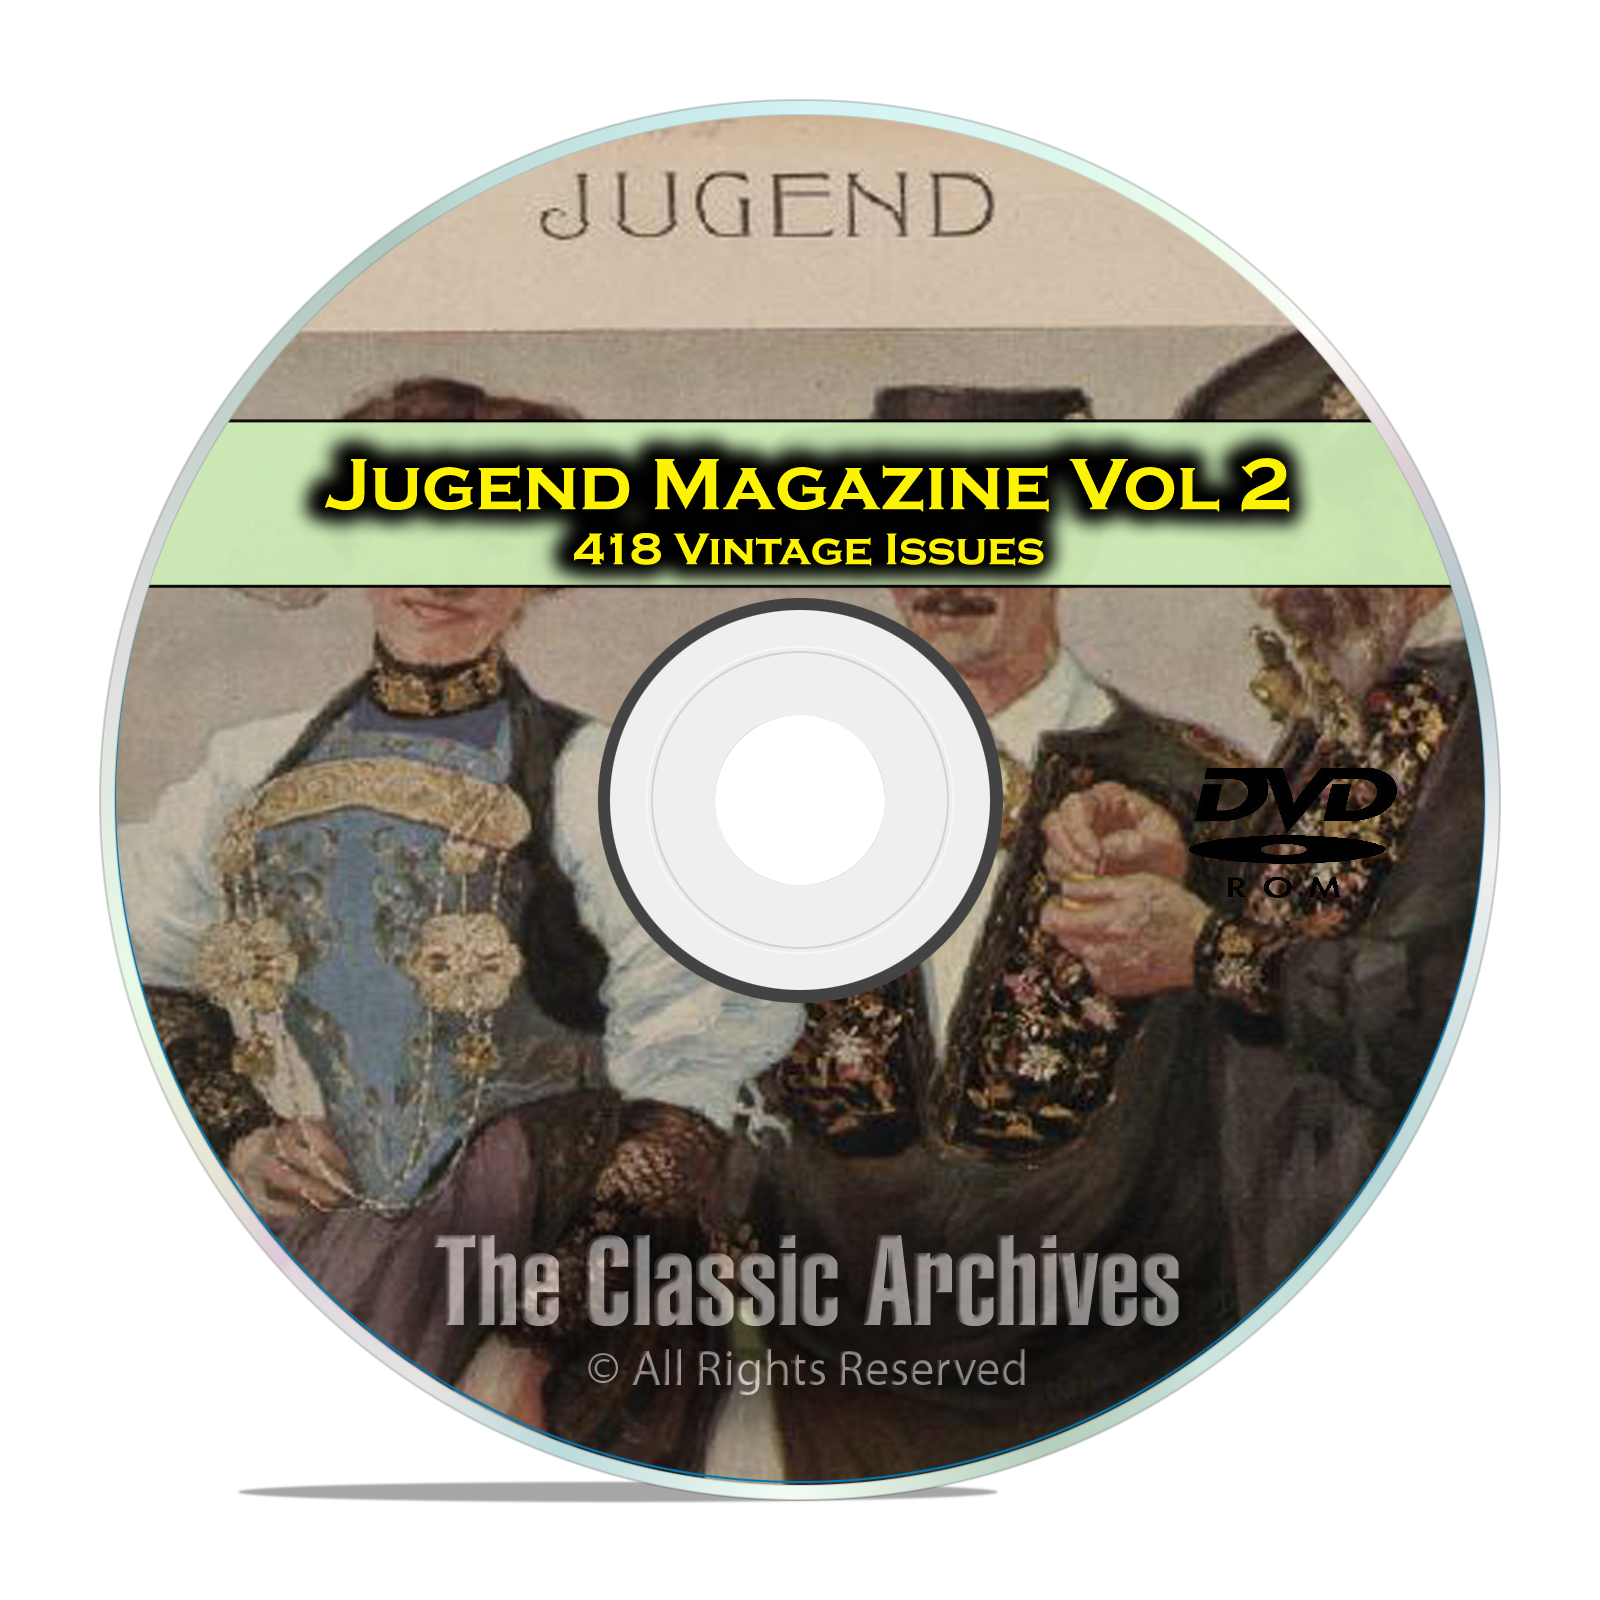 Jugend Vintage German Art Nouveau Magazine Jugendstil, 418 Issues Vol 2 DVD